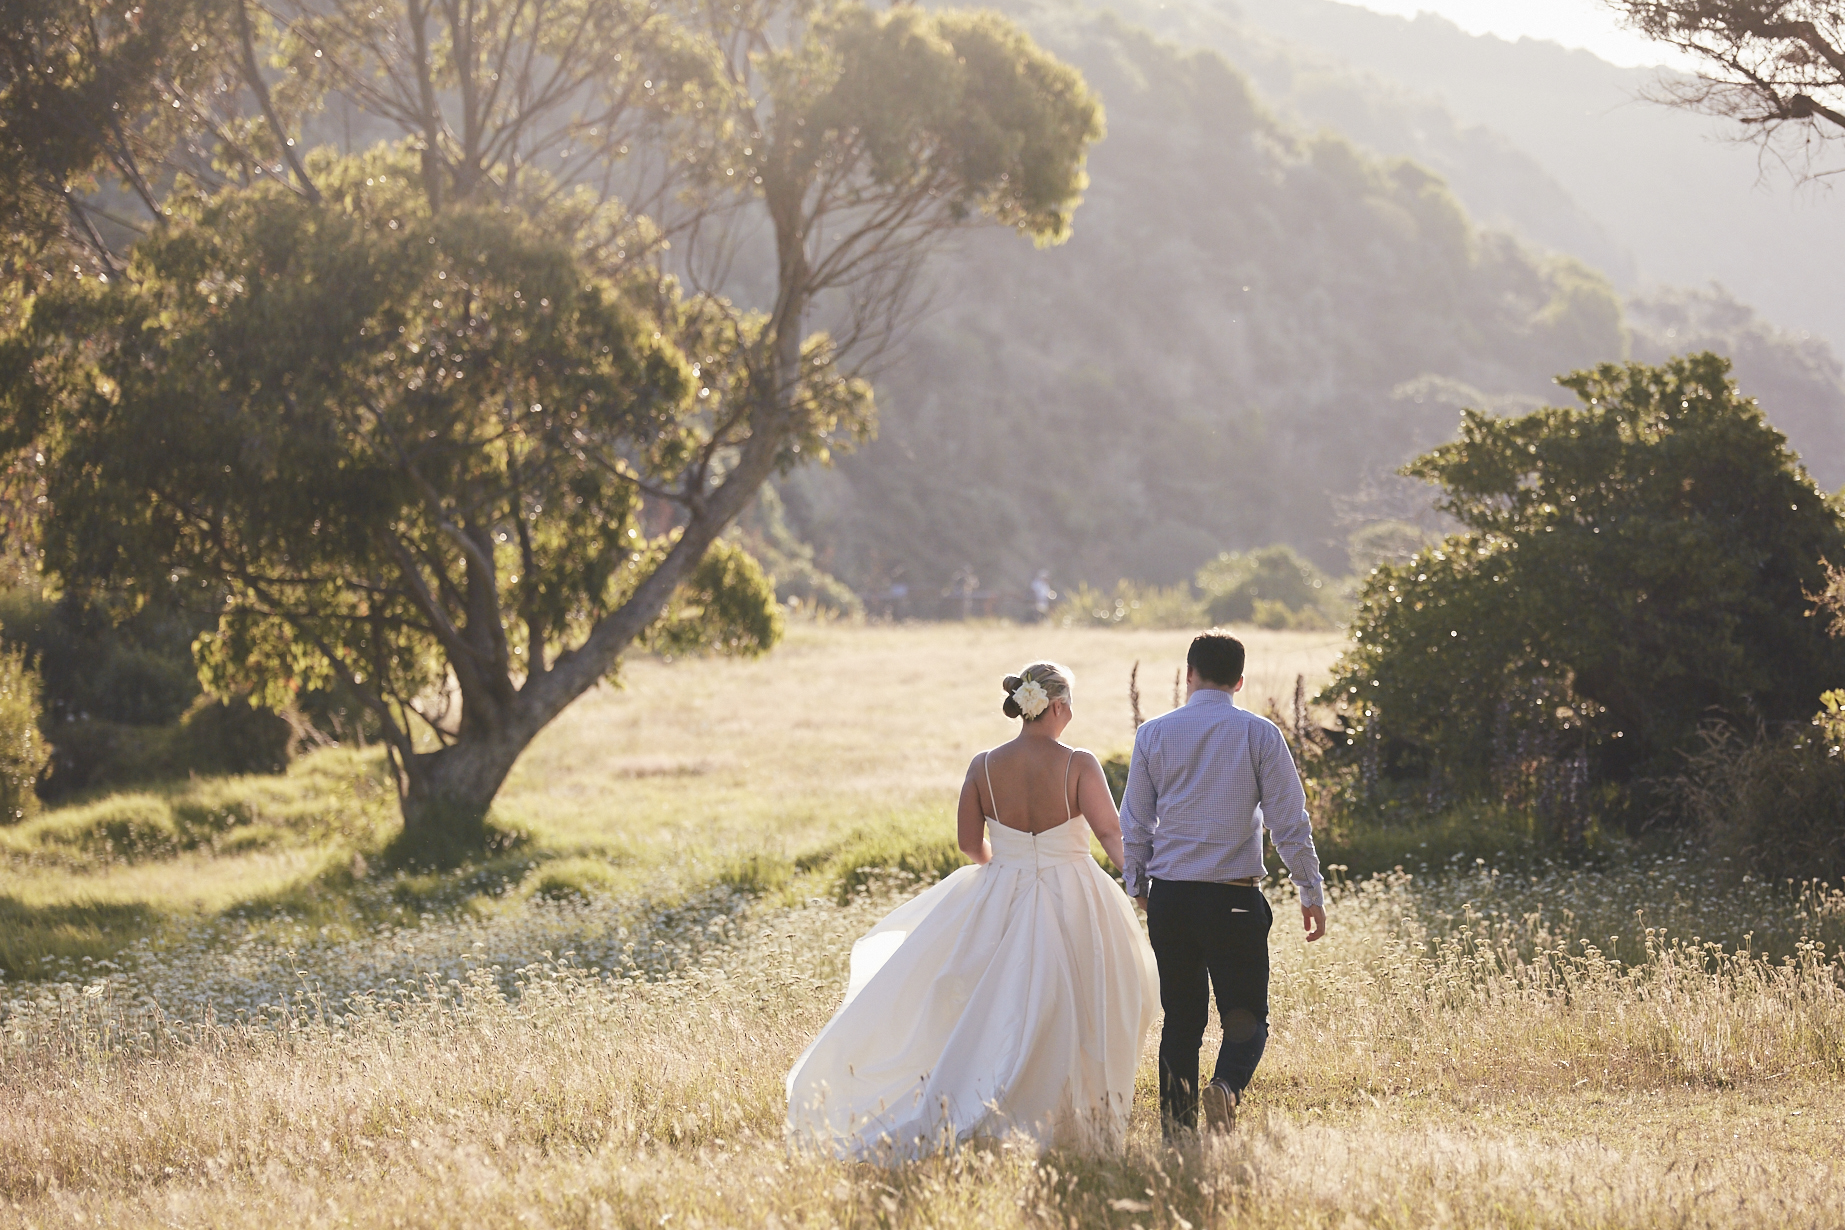 Stunning setting for a wedding